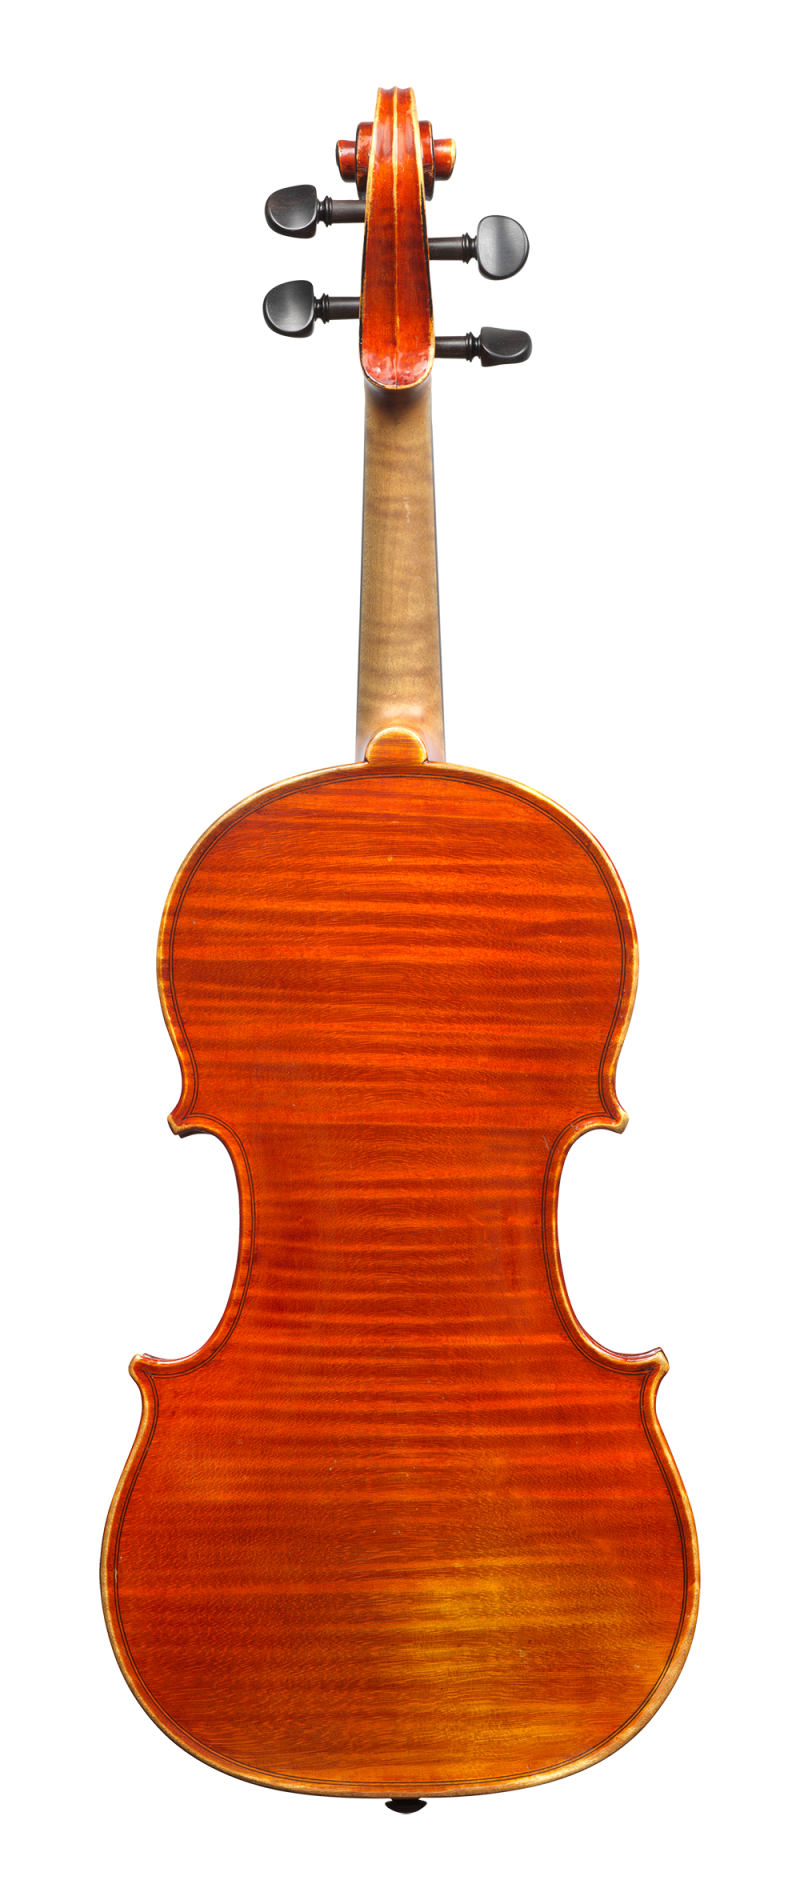 Back of a violin by Annibale Fagnola, Turin, 1923